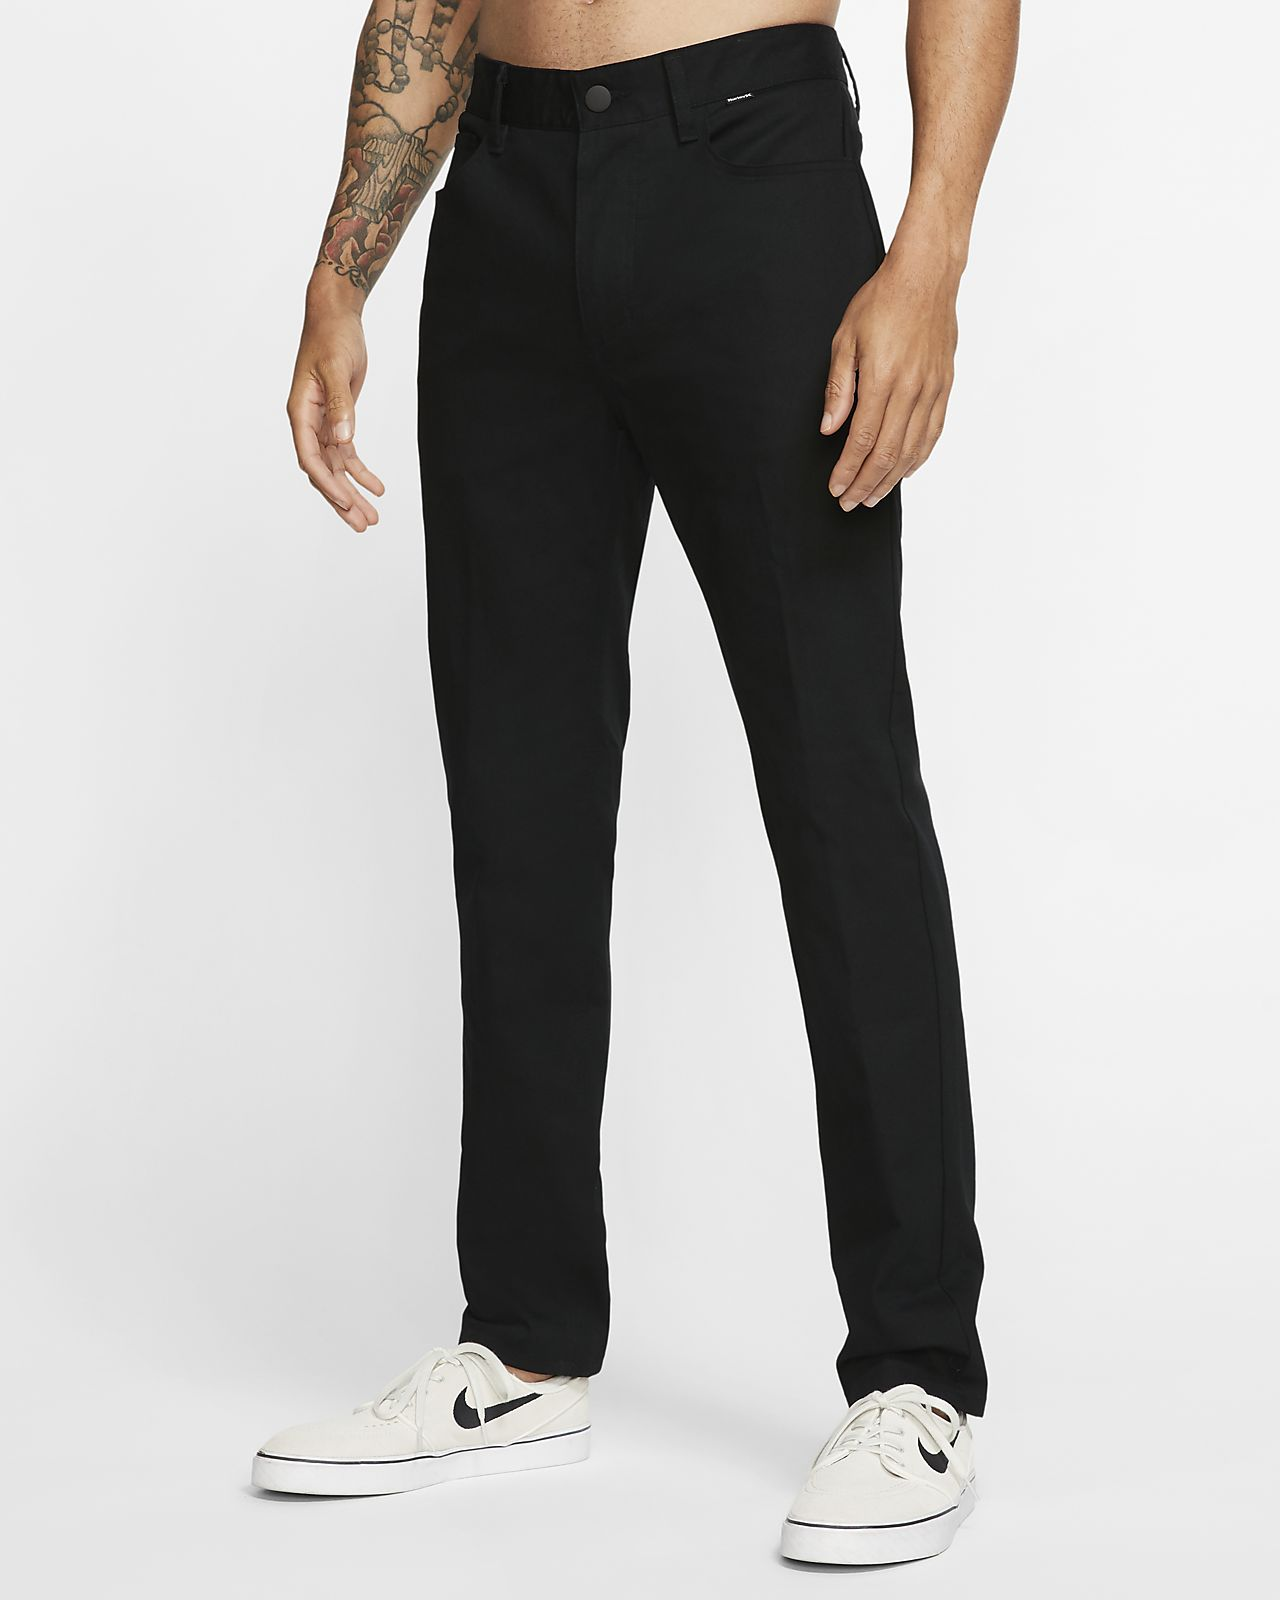 Hurley M 84 Storm Cotton™ Men's Trousers